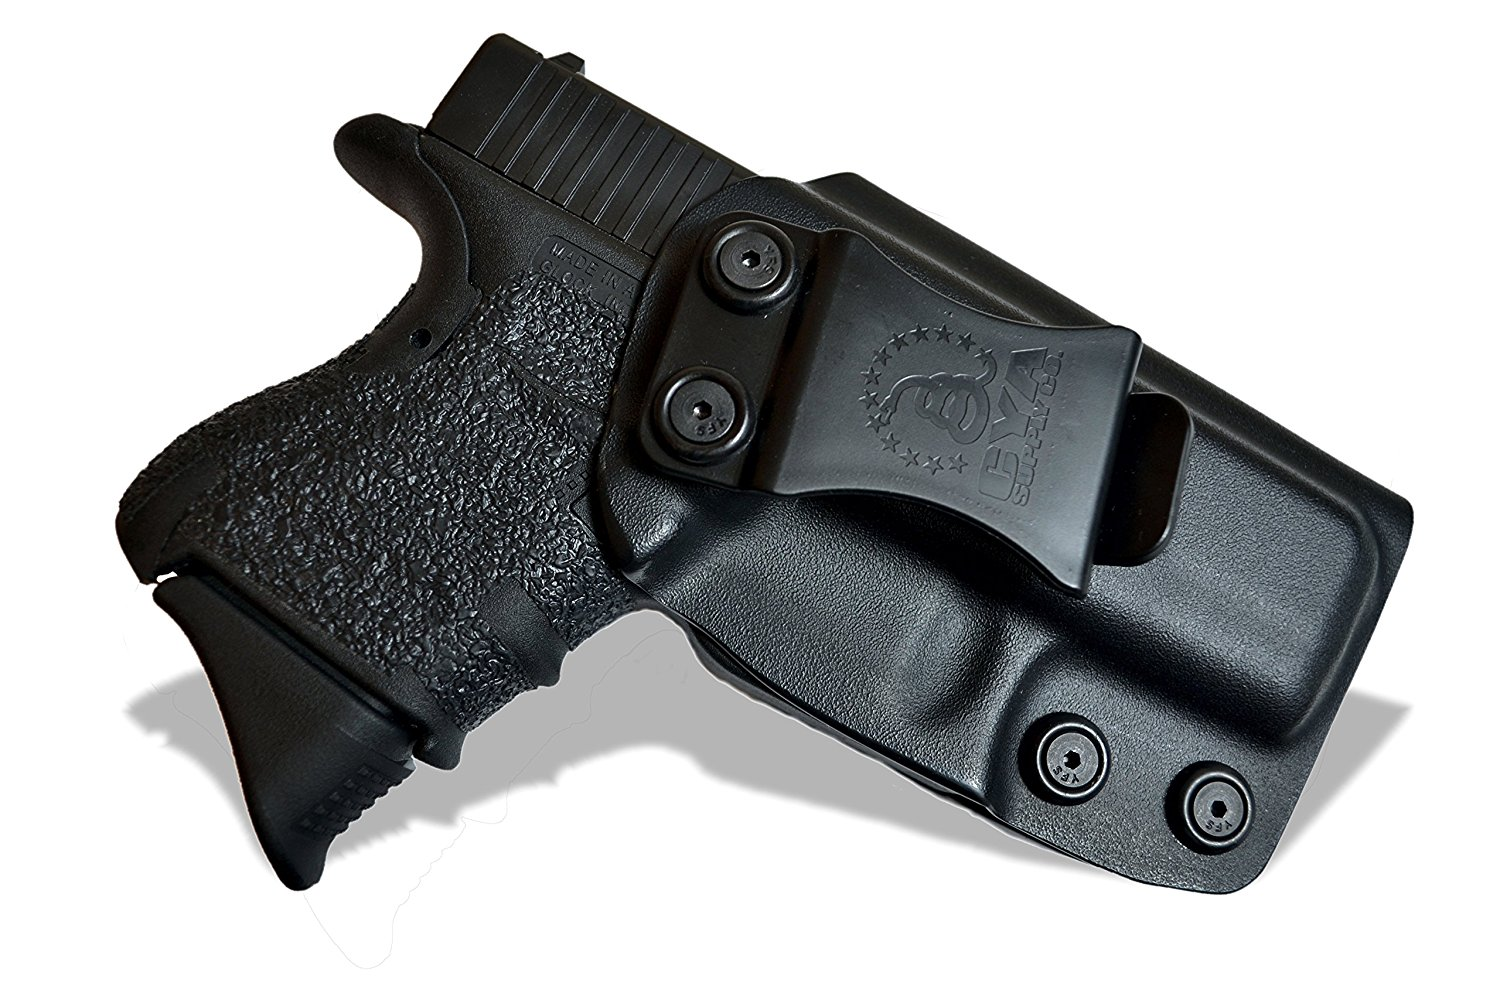 image of CYA Supply Co. IWB Holster with gun inside